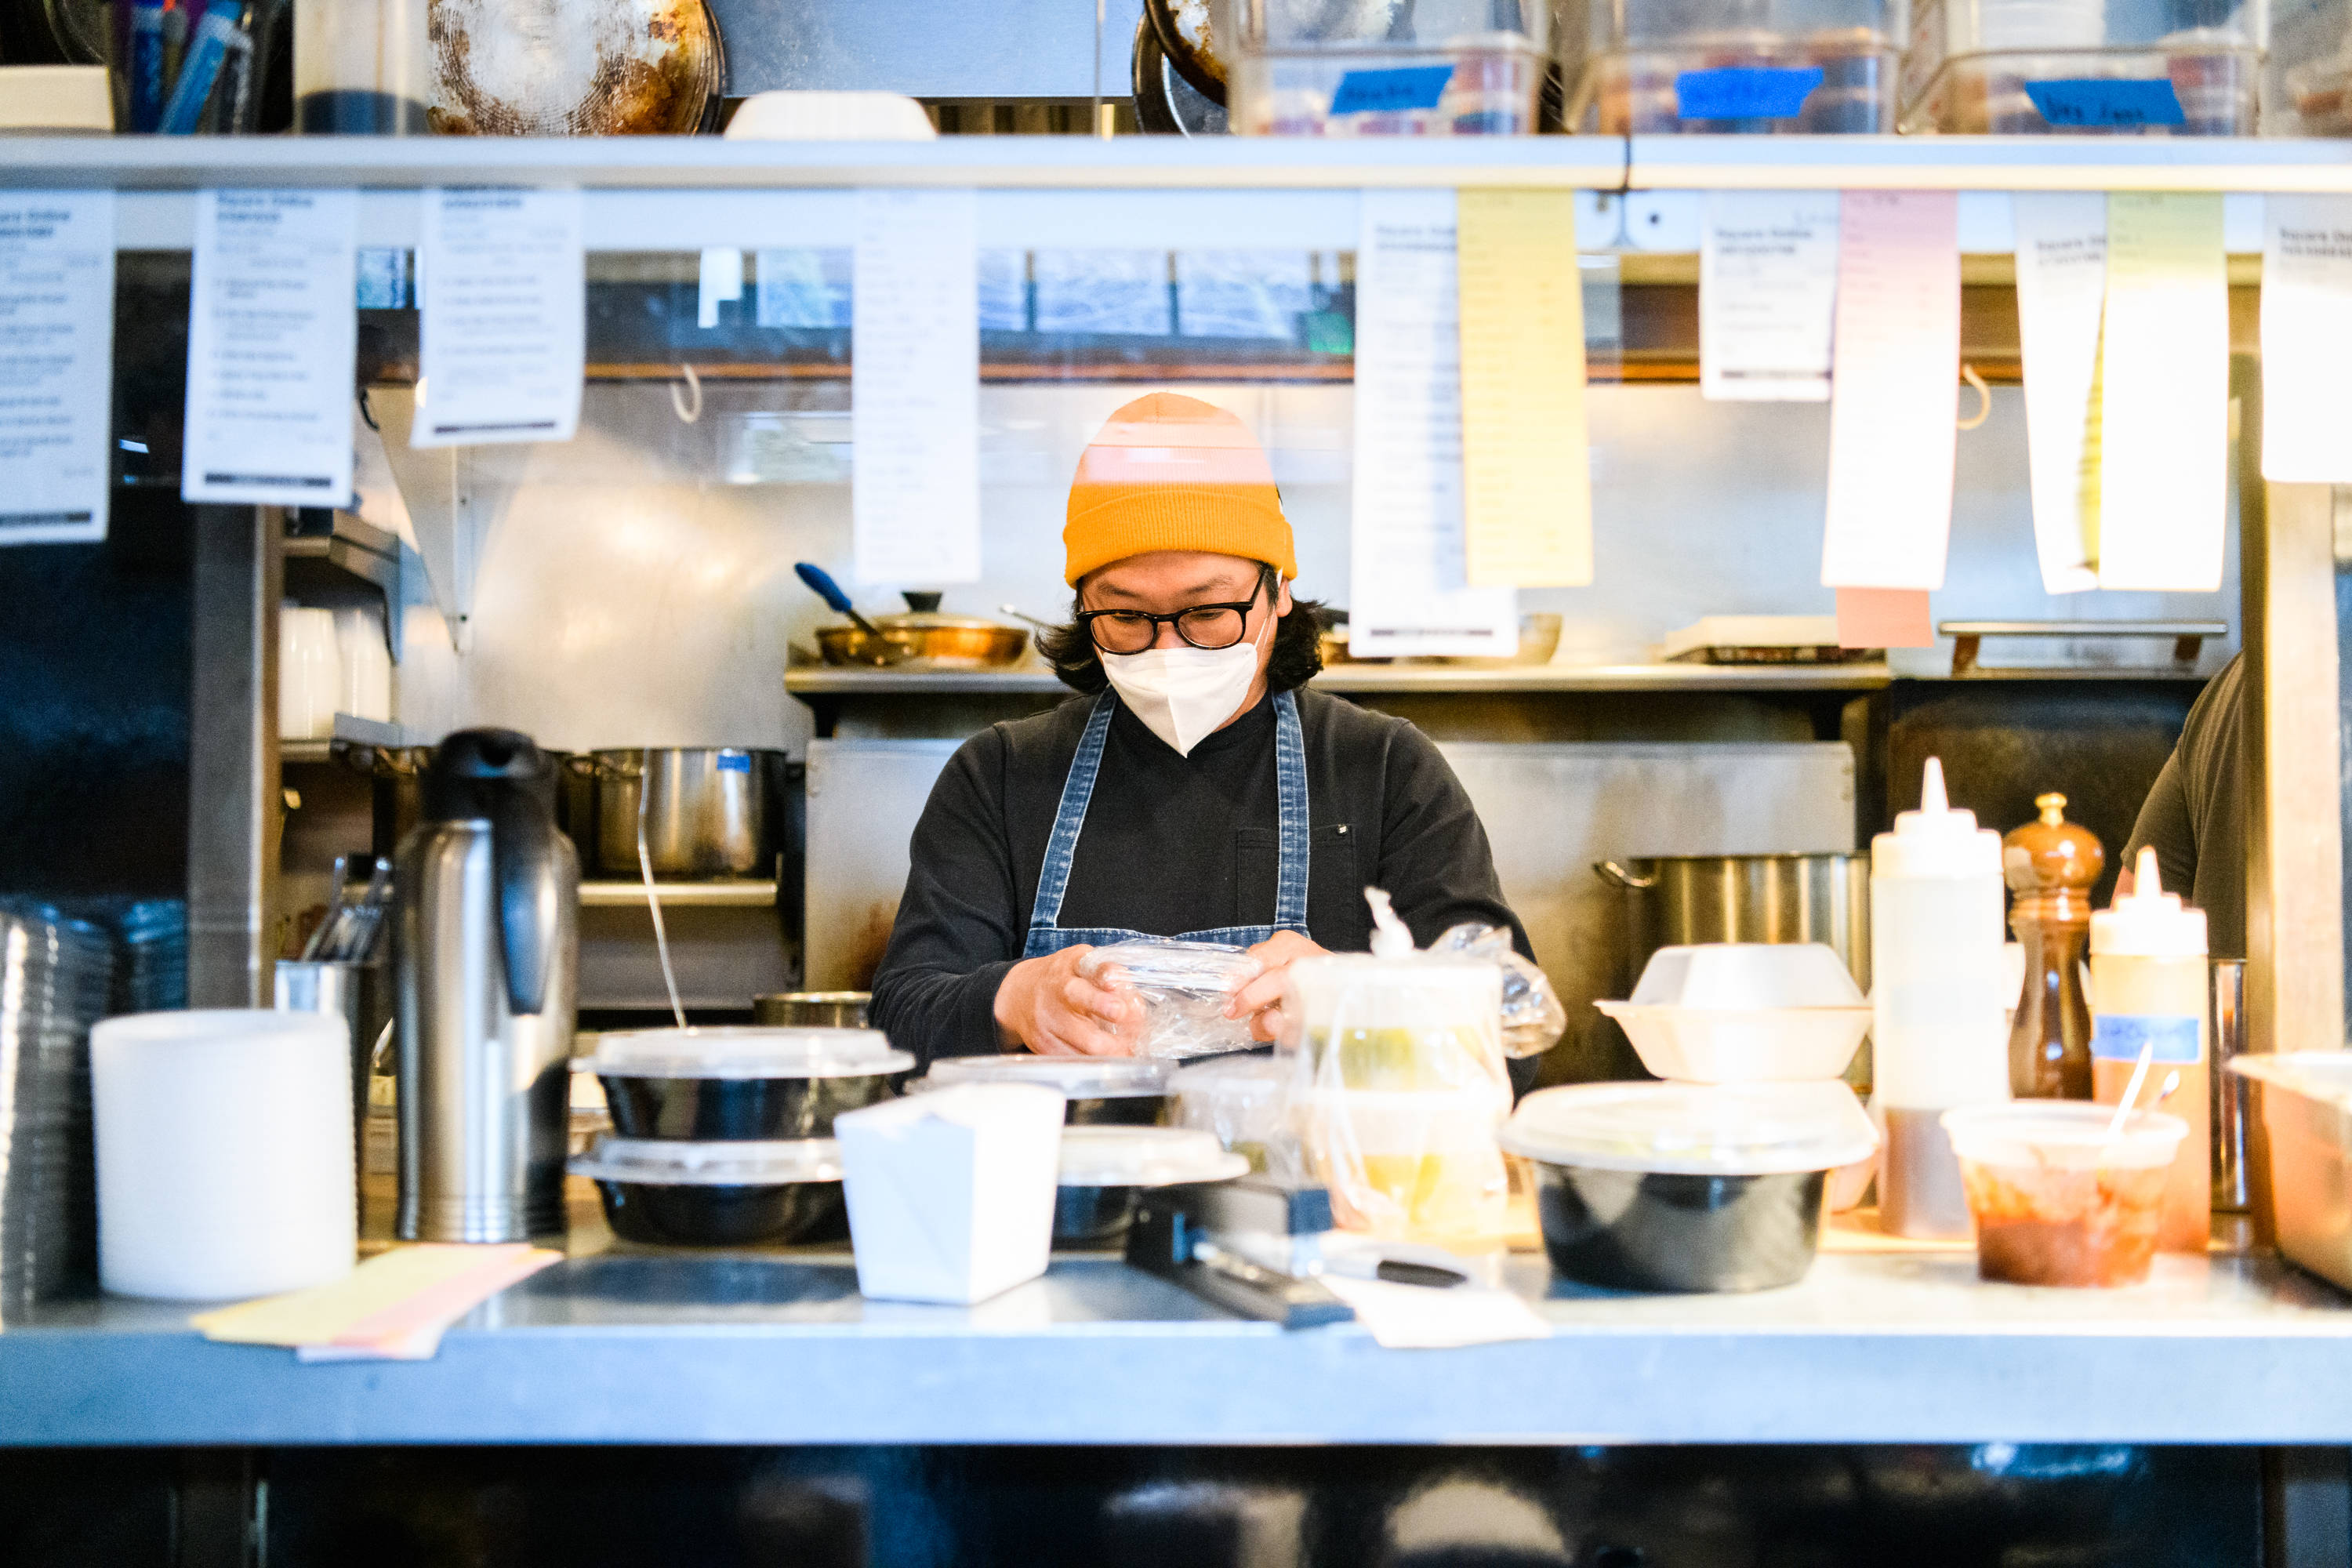 Peter Cho, the owner of restaurants Toki and Han Oak, wears a mask behind the pass in the kitchen of Toki, a Korean restaurant in Portland, Oregon.